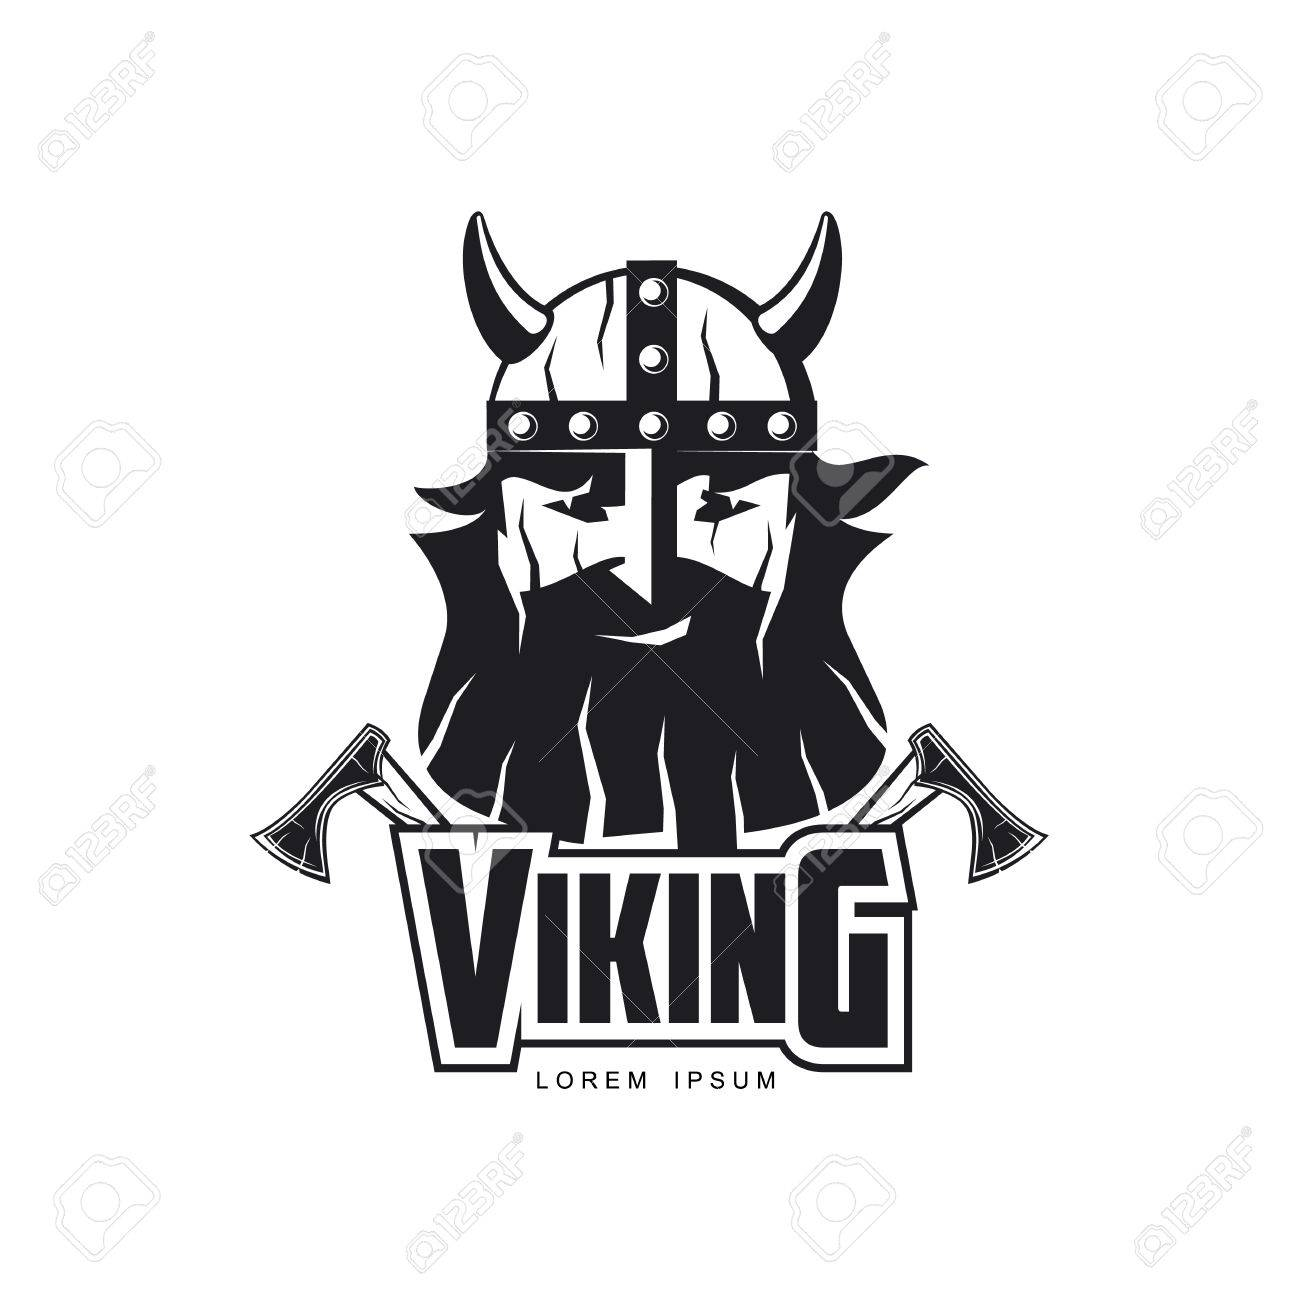 dd994dfc967a6 Vector - vector vikings icon logo template design simple flat isolated  illustration on a white background. Axes and man in helmet with mustache  and beard ...